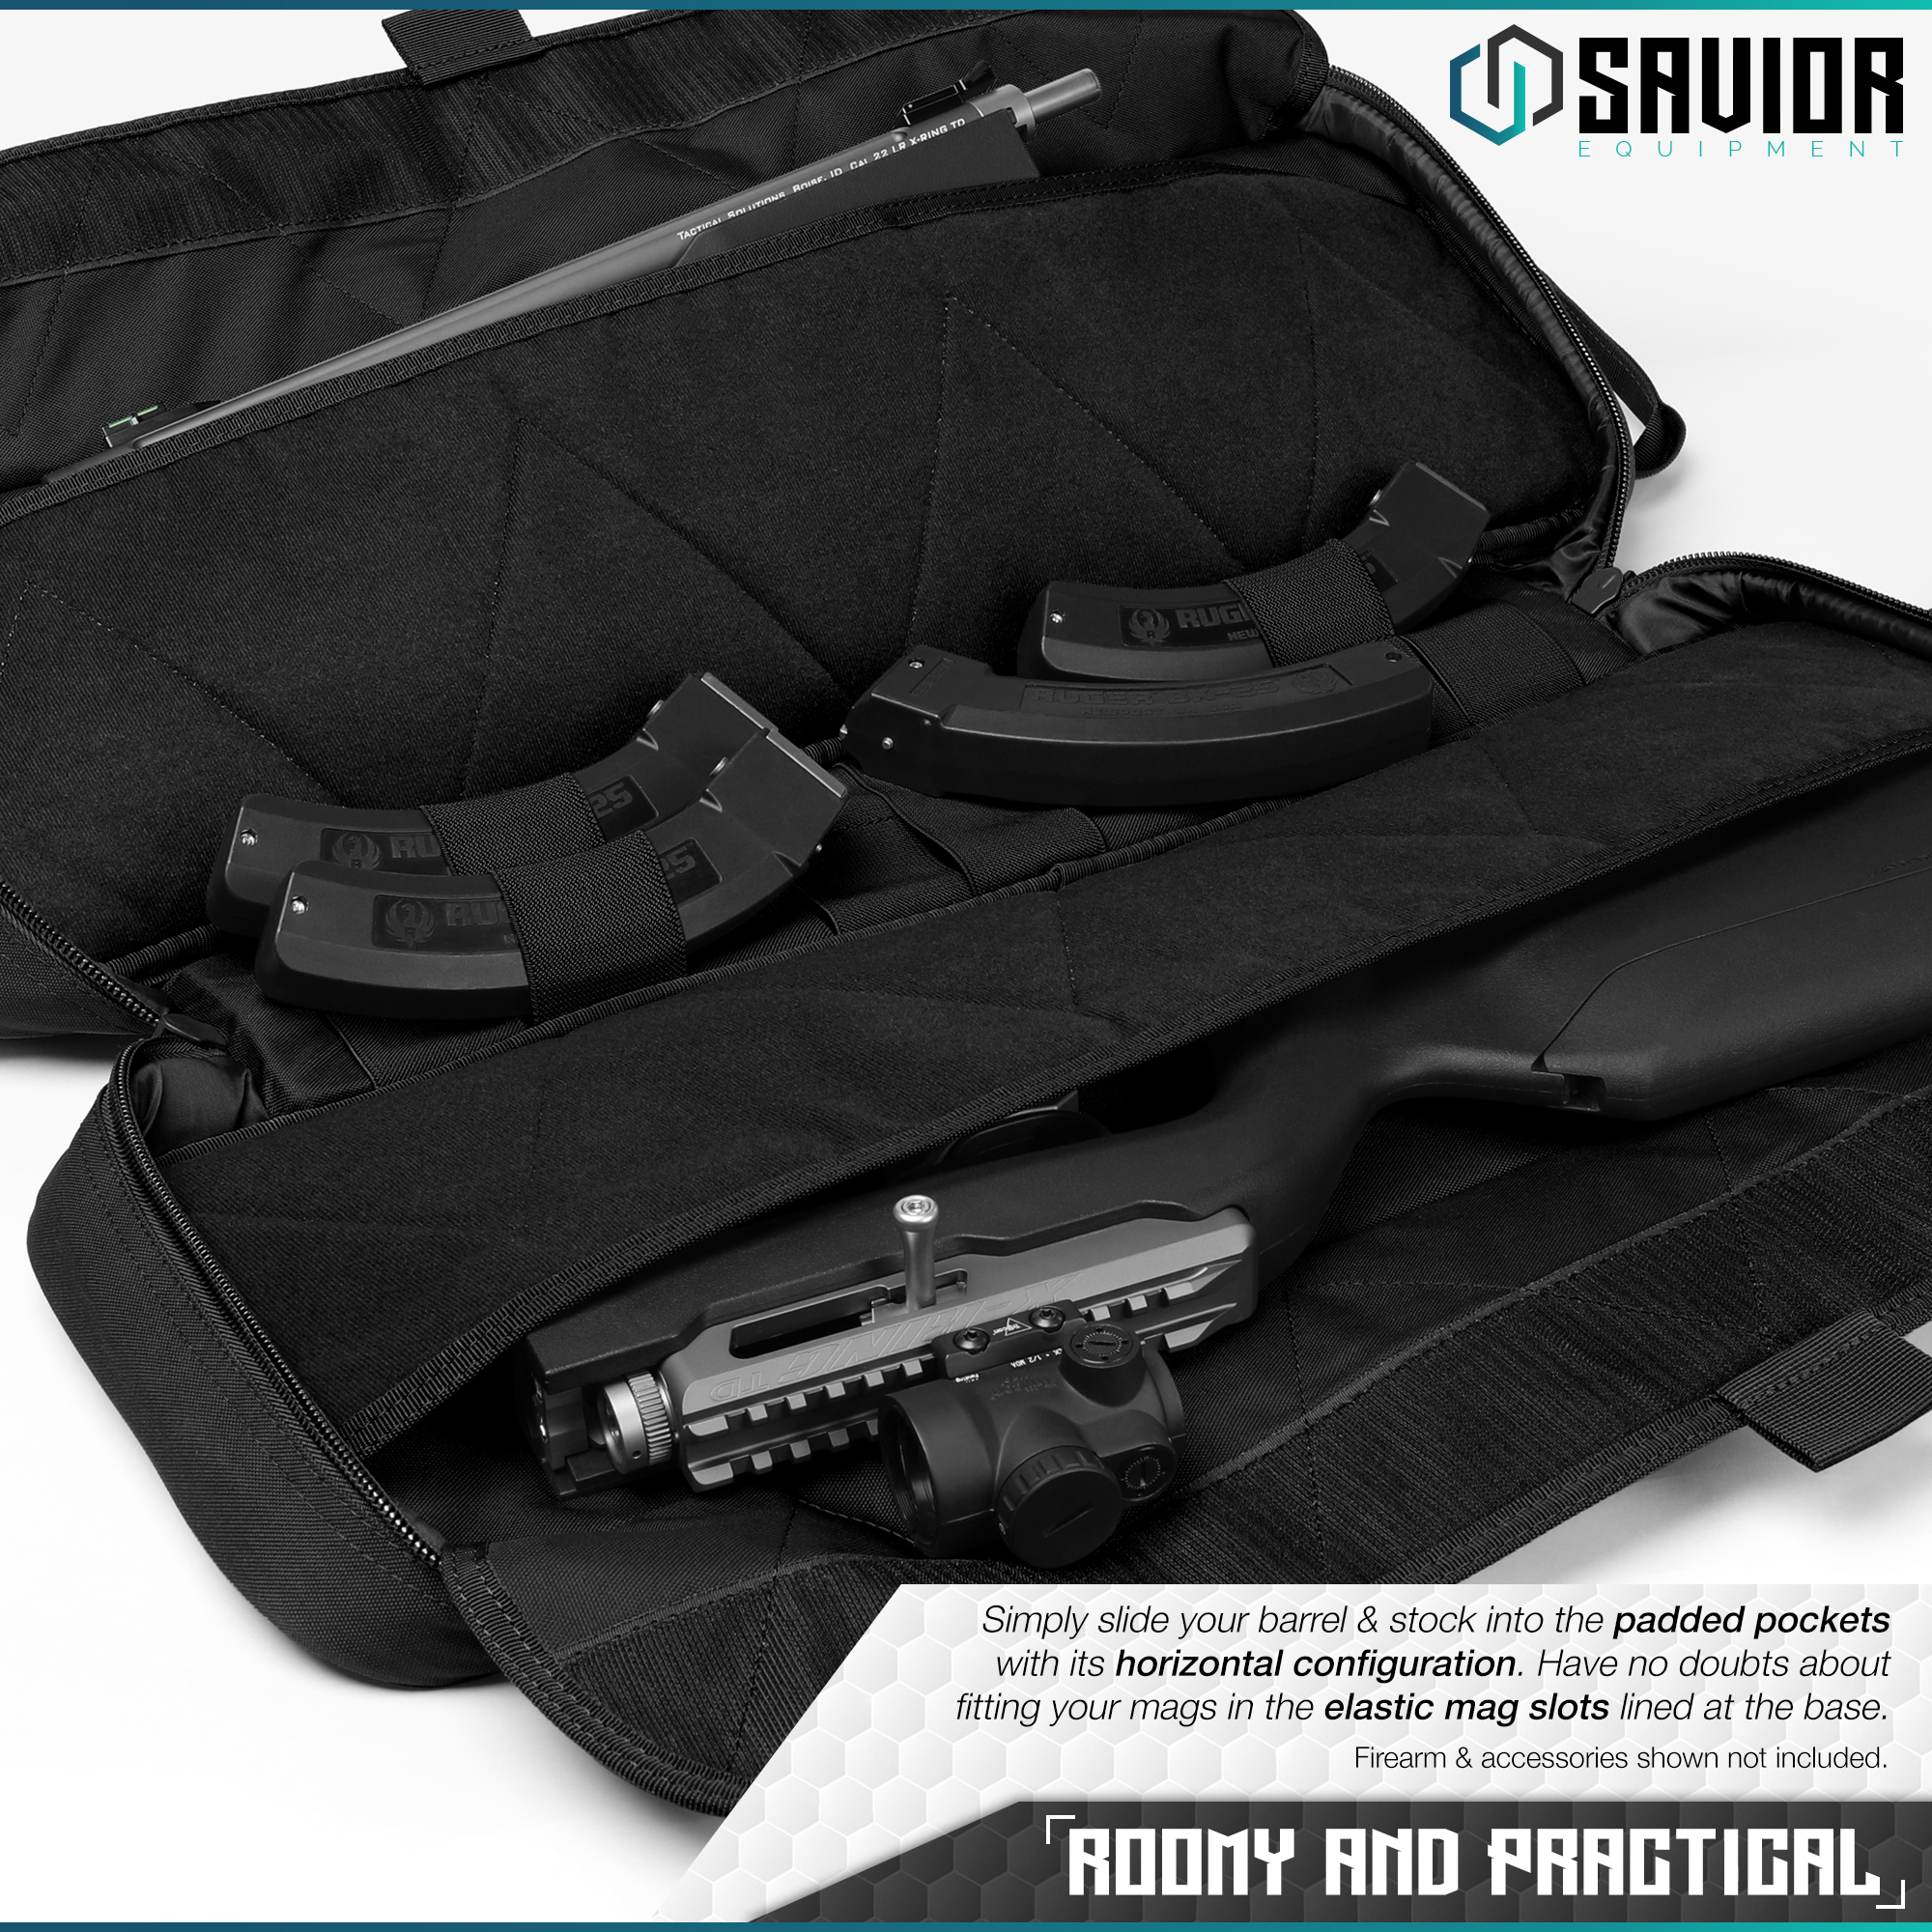 Savior-Tactical-Urban-Takedown-Bag-Carbine-Rifle-Padded-Shotgun-Firearm-Backpack thumbnail 10